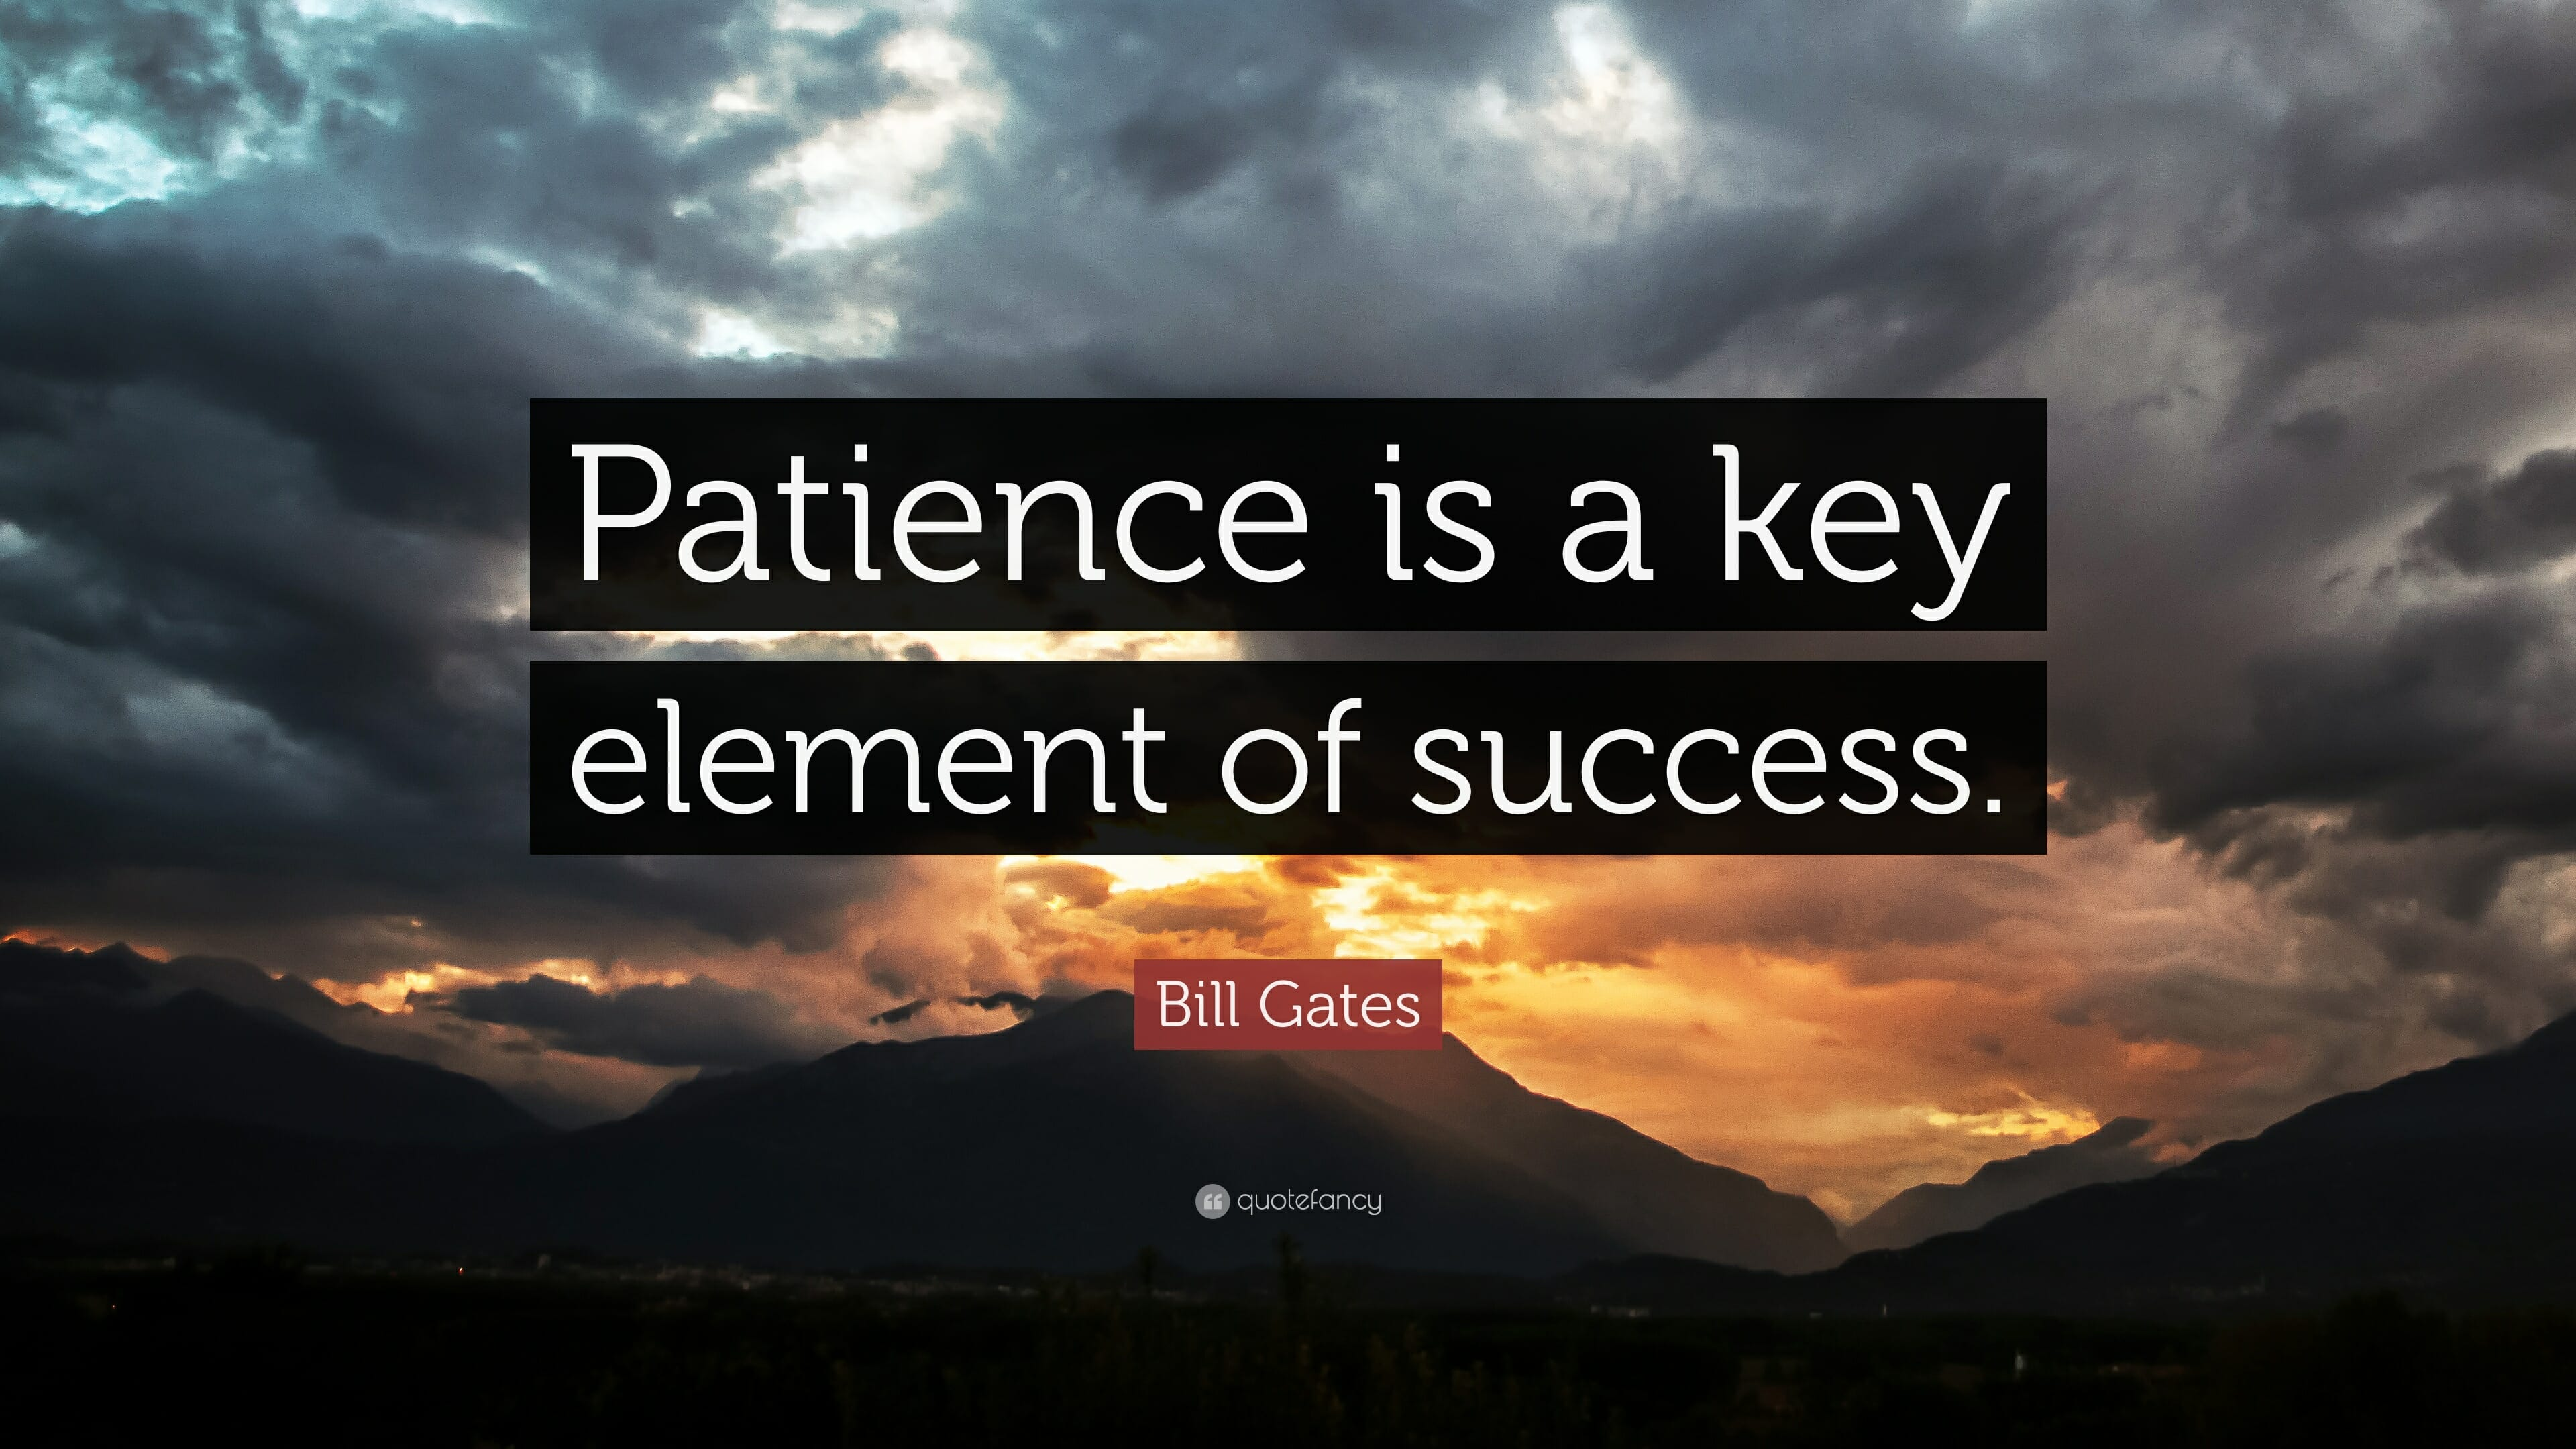 patience is a key element of success